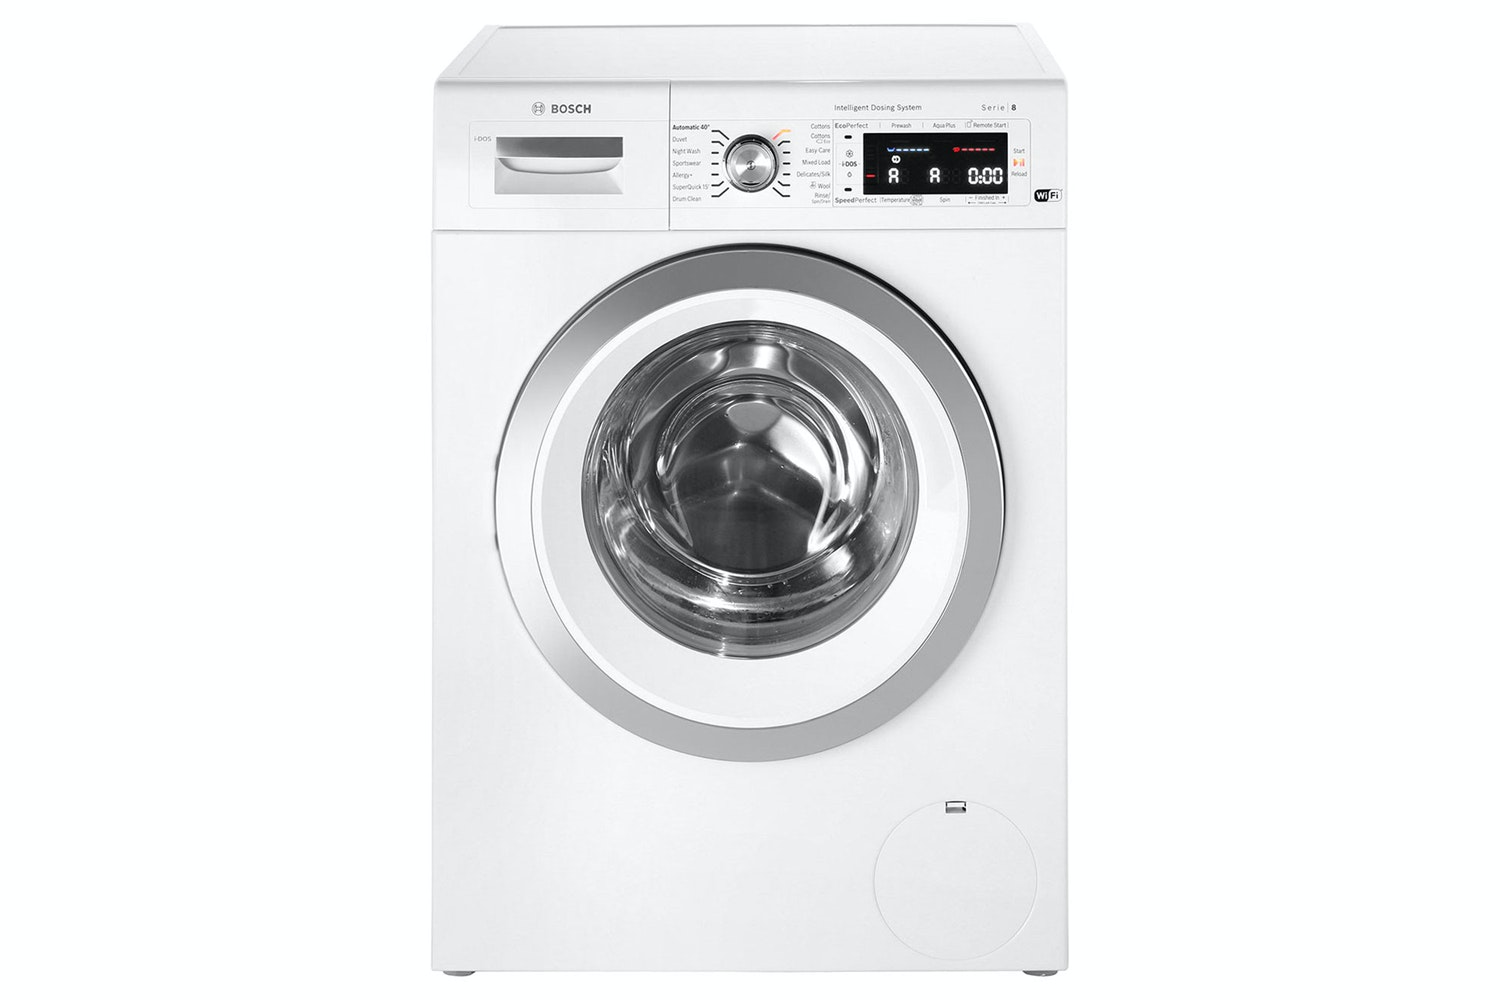 Bosch IDOS Washing Machine 9kg | WAWH8660GB